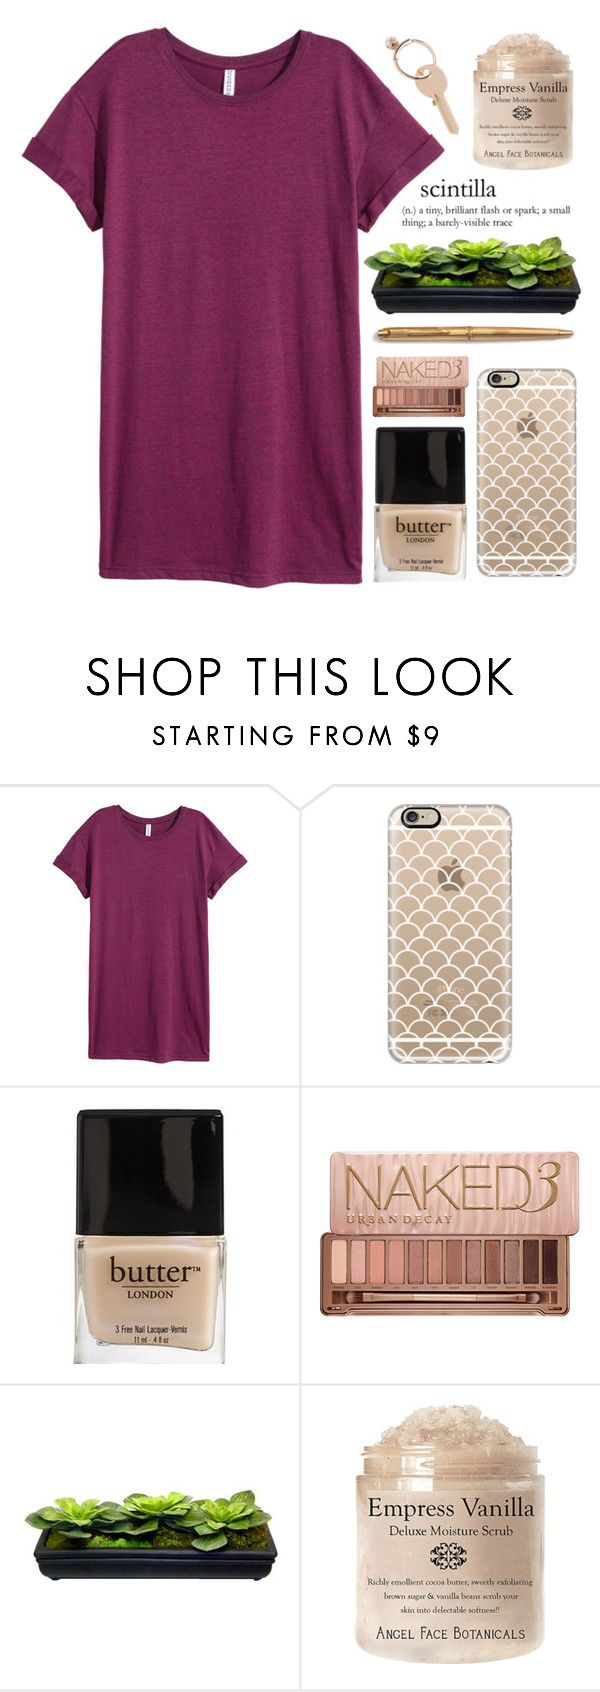 """""""1O3 ; i'm back!"""" by faith-and-metanoia ❤ liked on Polyvore featuring H&M, Casetify, Butter London, Urban Decay and Maison Margiela"""